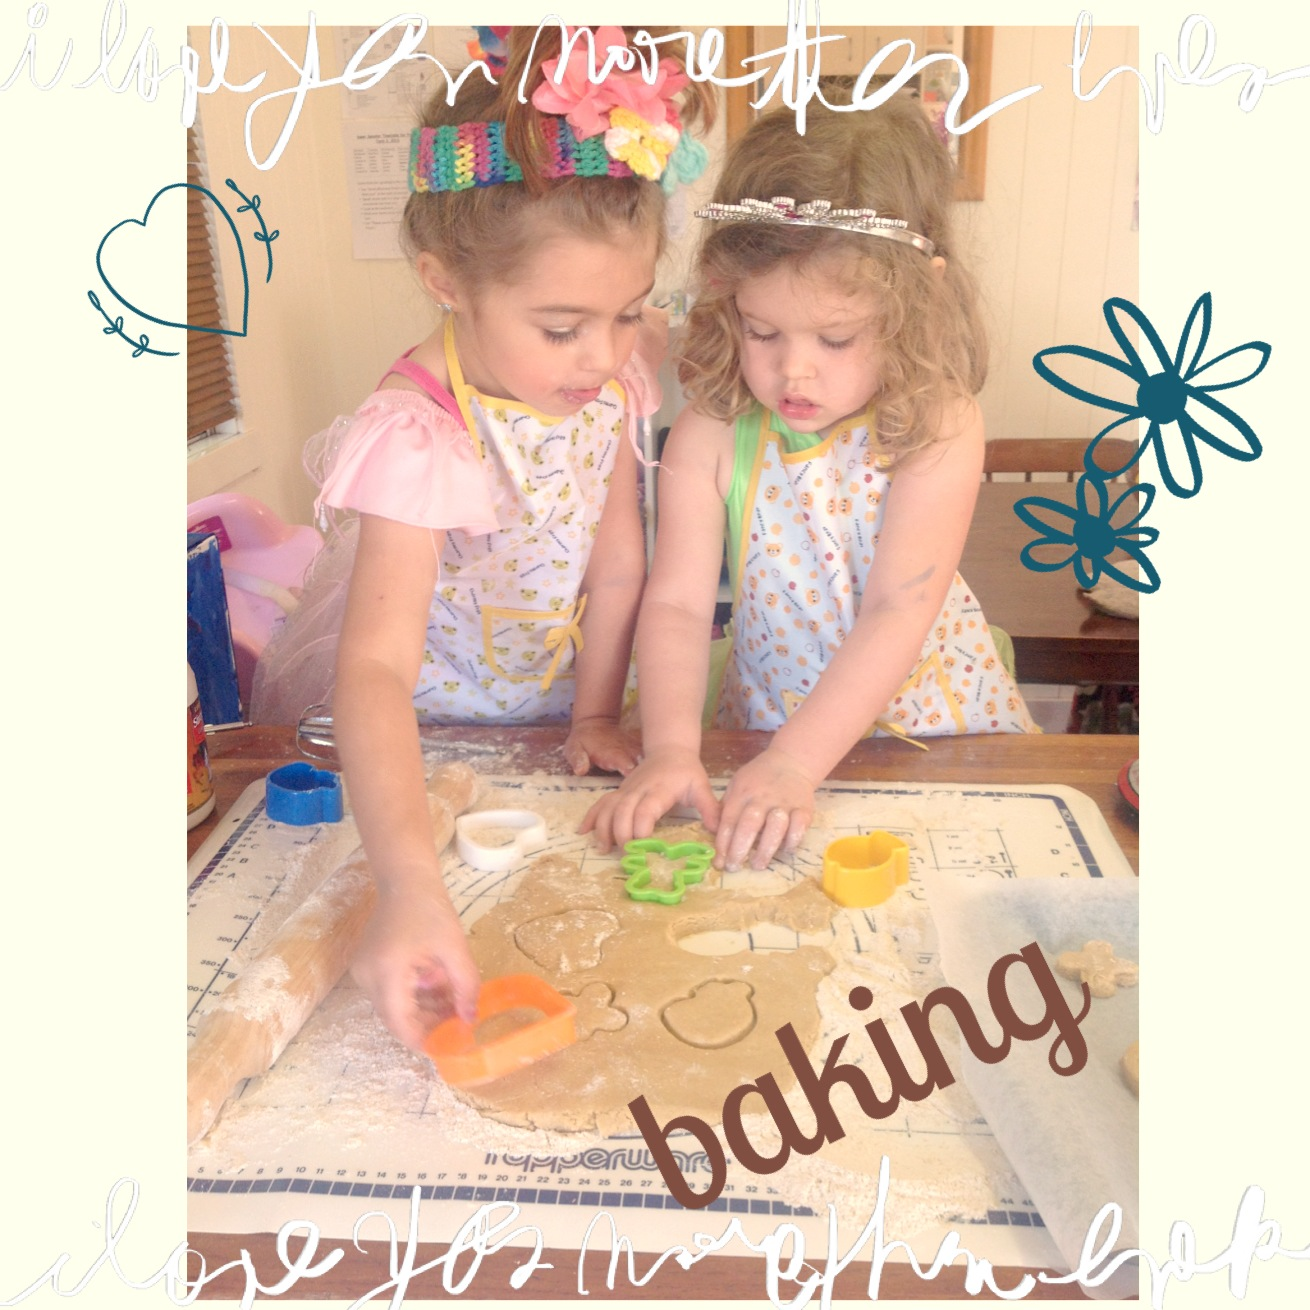 Gateway Therapies - Therapy at Home - Play Baking